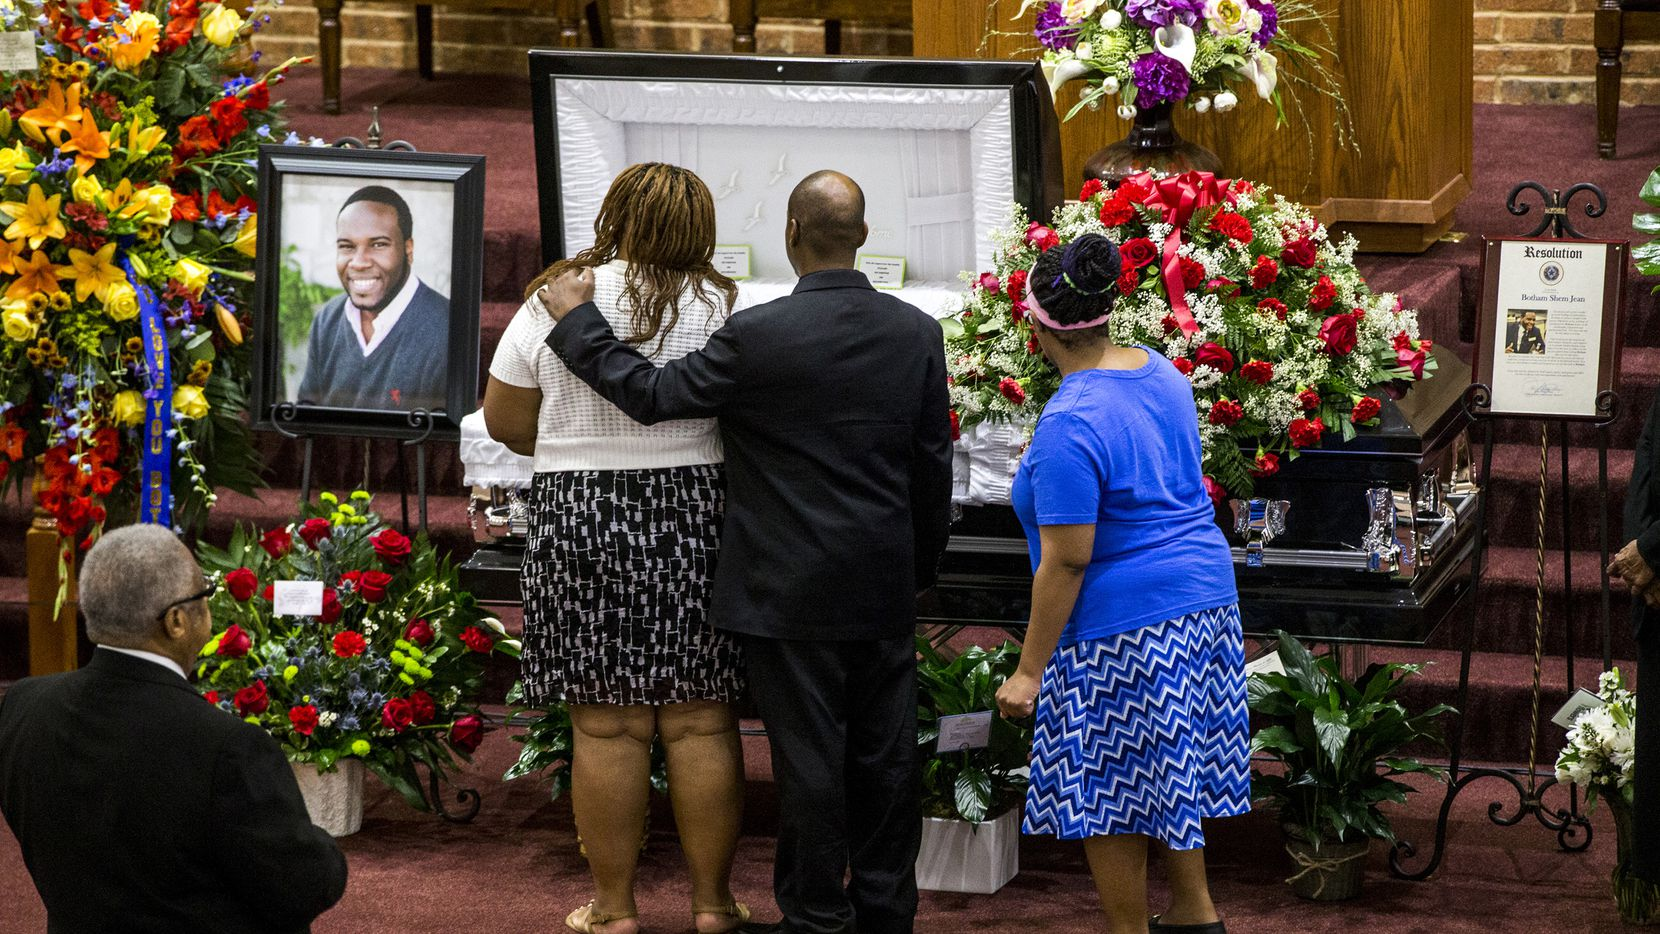 Mourners console each other during the public viewing before the funeral of Botham Shem Jean at the Greenville Avenue Church of Christ on Sept. 13, 2018 in Richardson. He was shot and killed by a Dallas police officer in his apartment in Dallas.